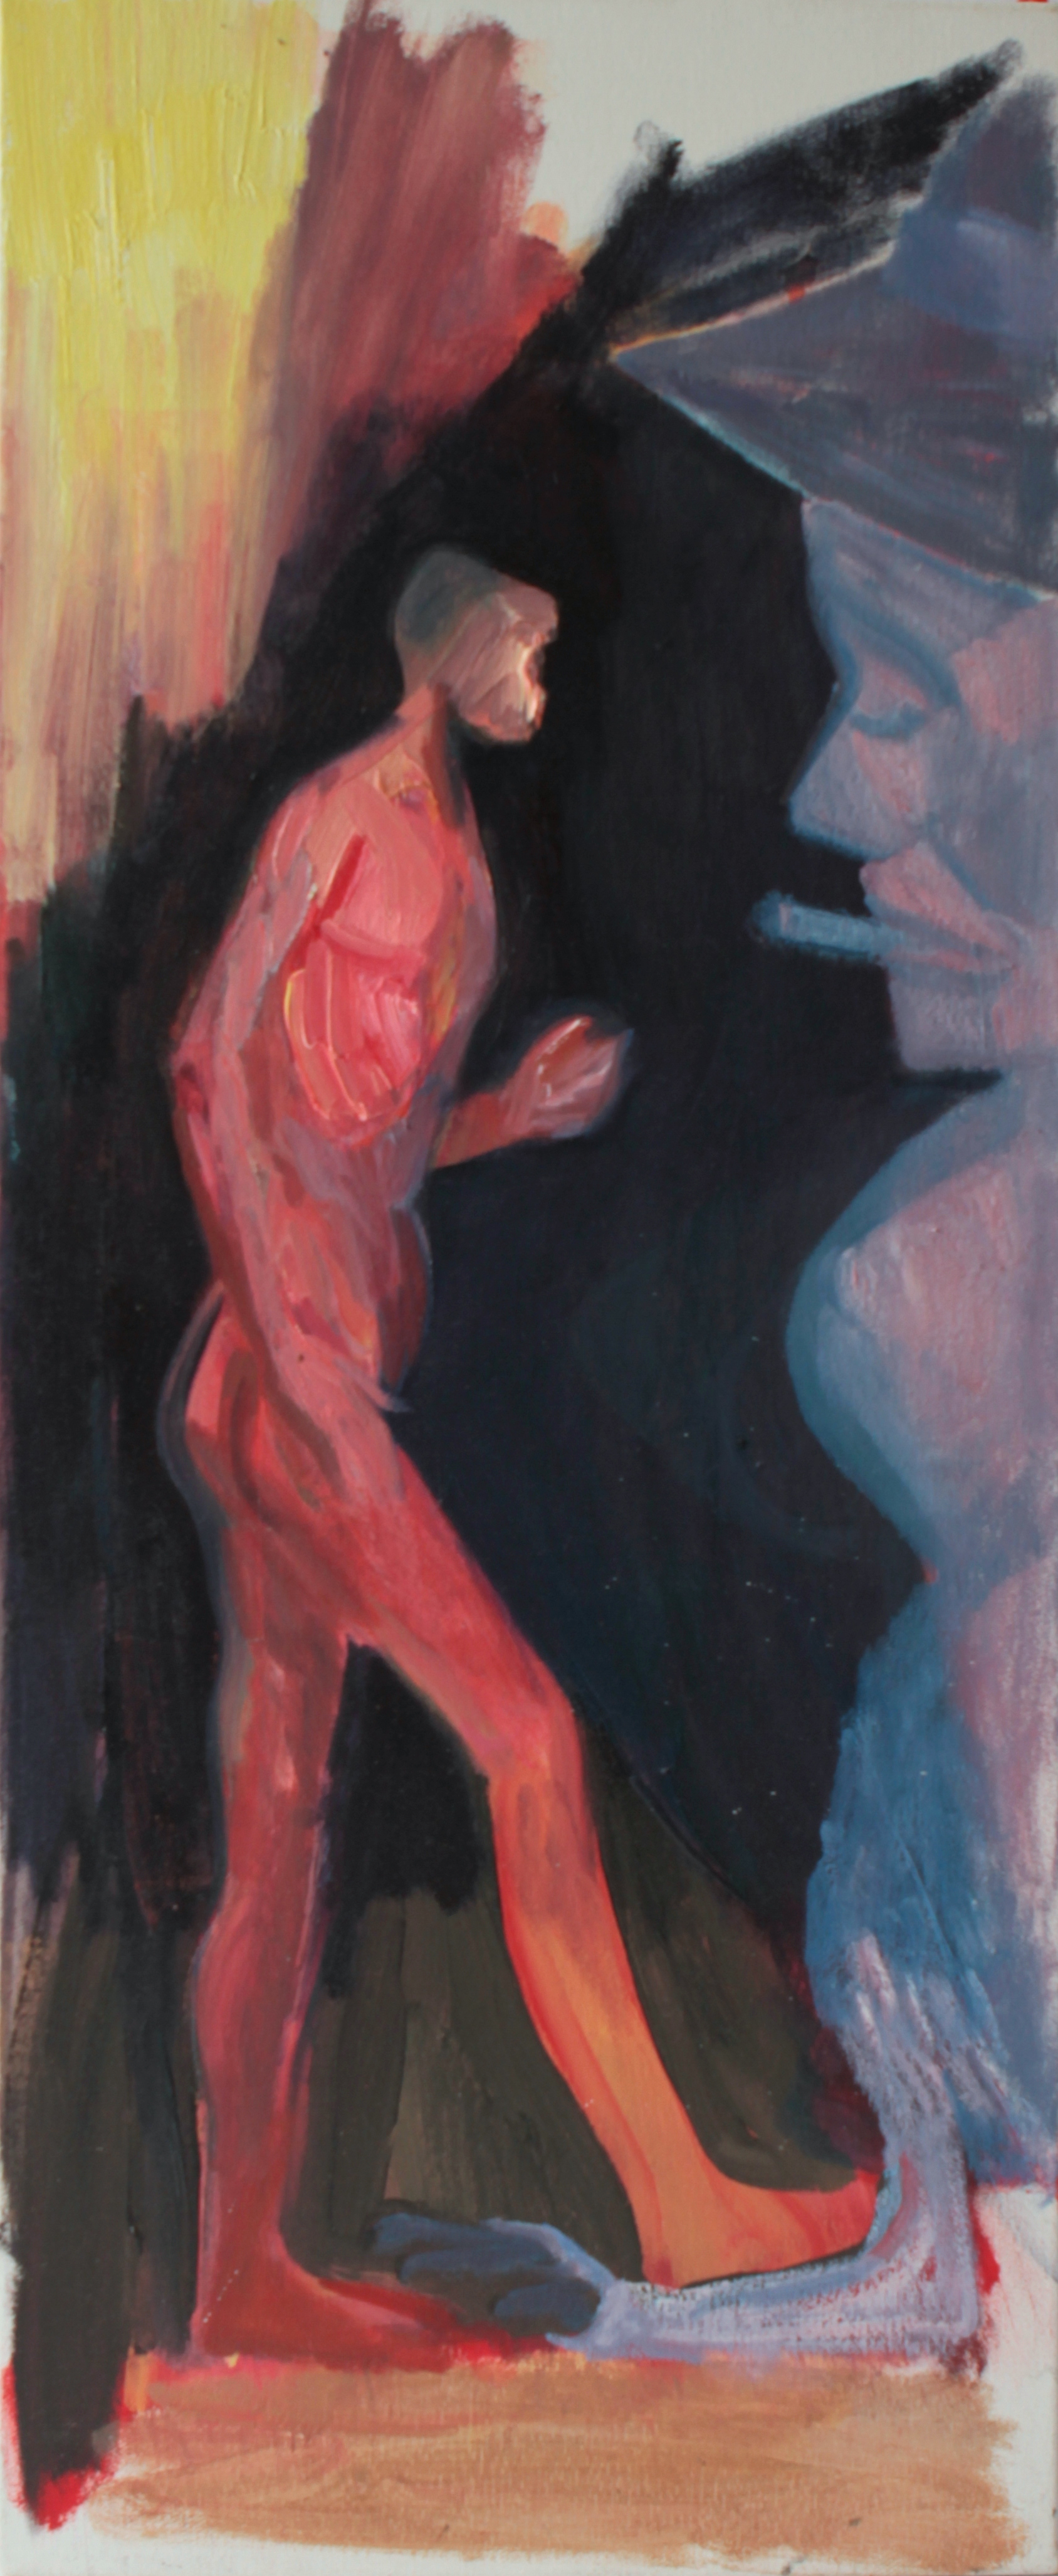 The Oedipus Case, Oil on linen, 91 x 38 cm, 2014